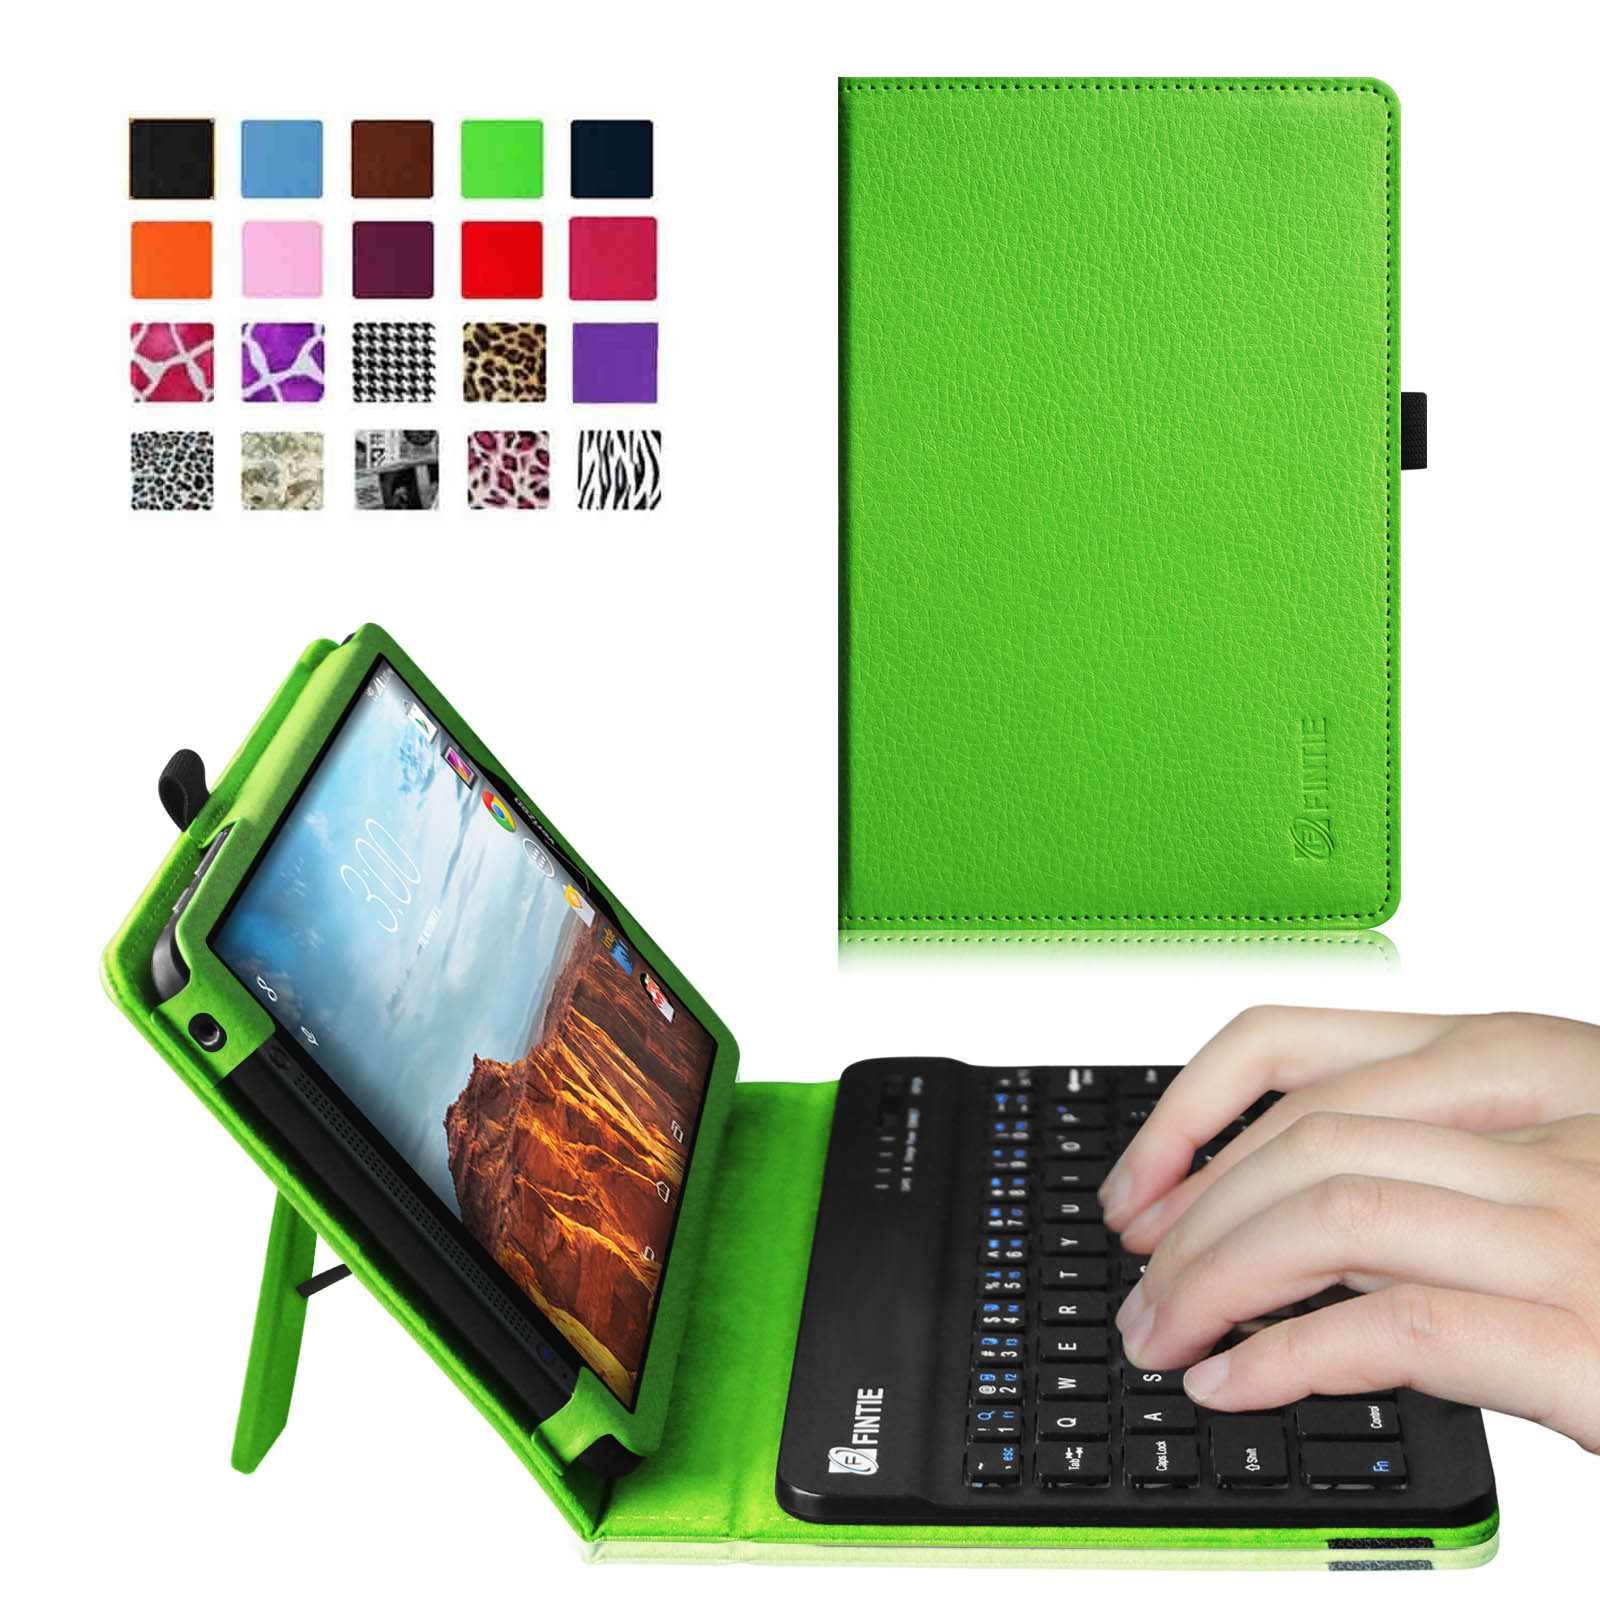 Verizon Ellipsis 8 4G LTE Tablet Keyboard Case - Fintie Slim Fit PU Leather Stand Cover with Removable Keyboard, Green